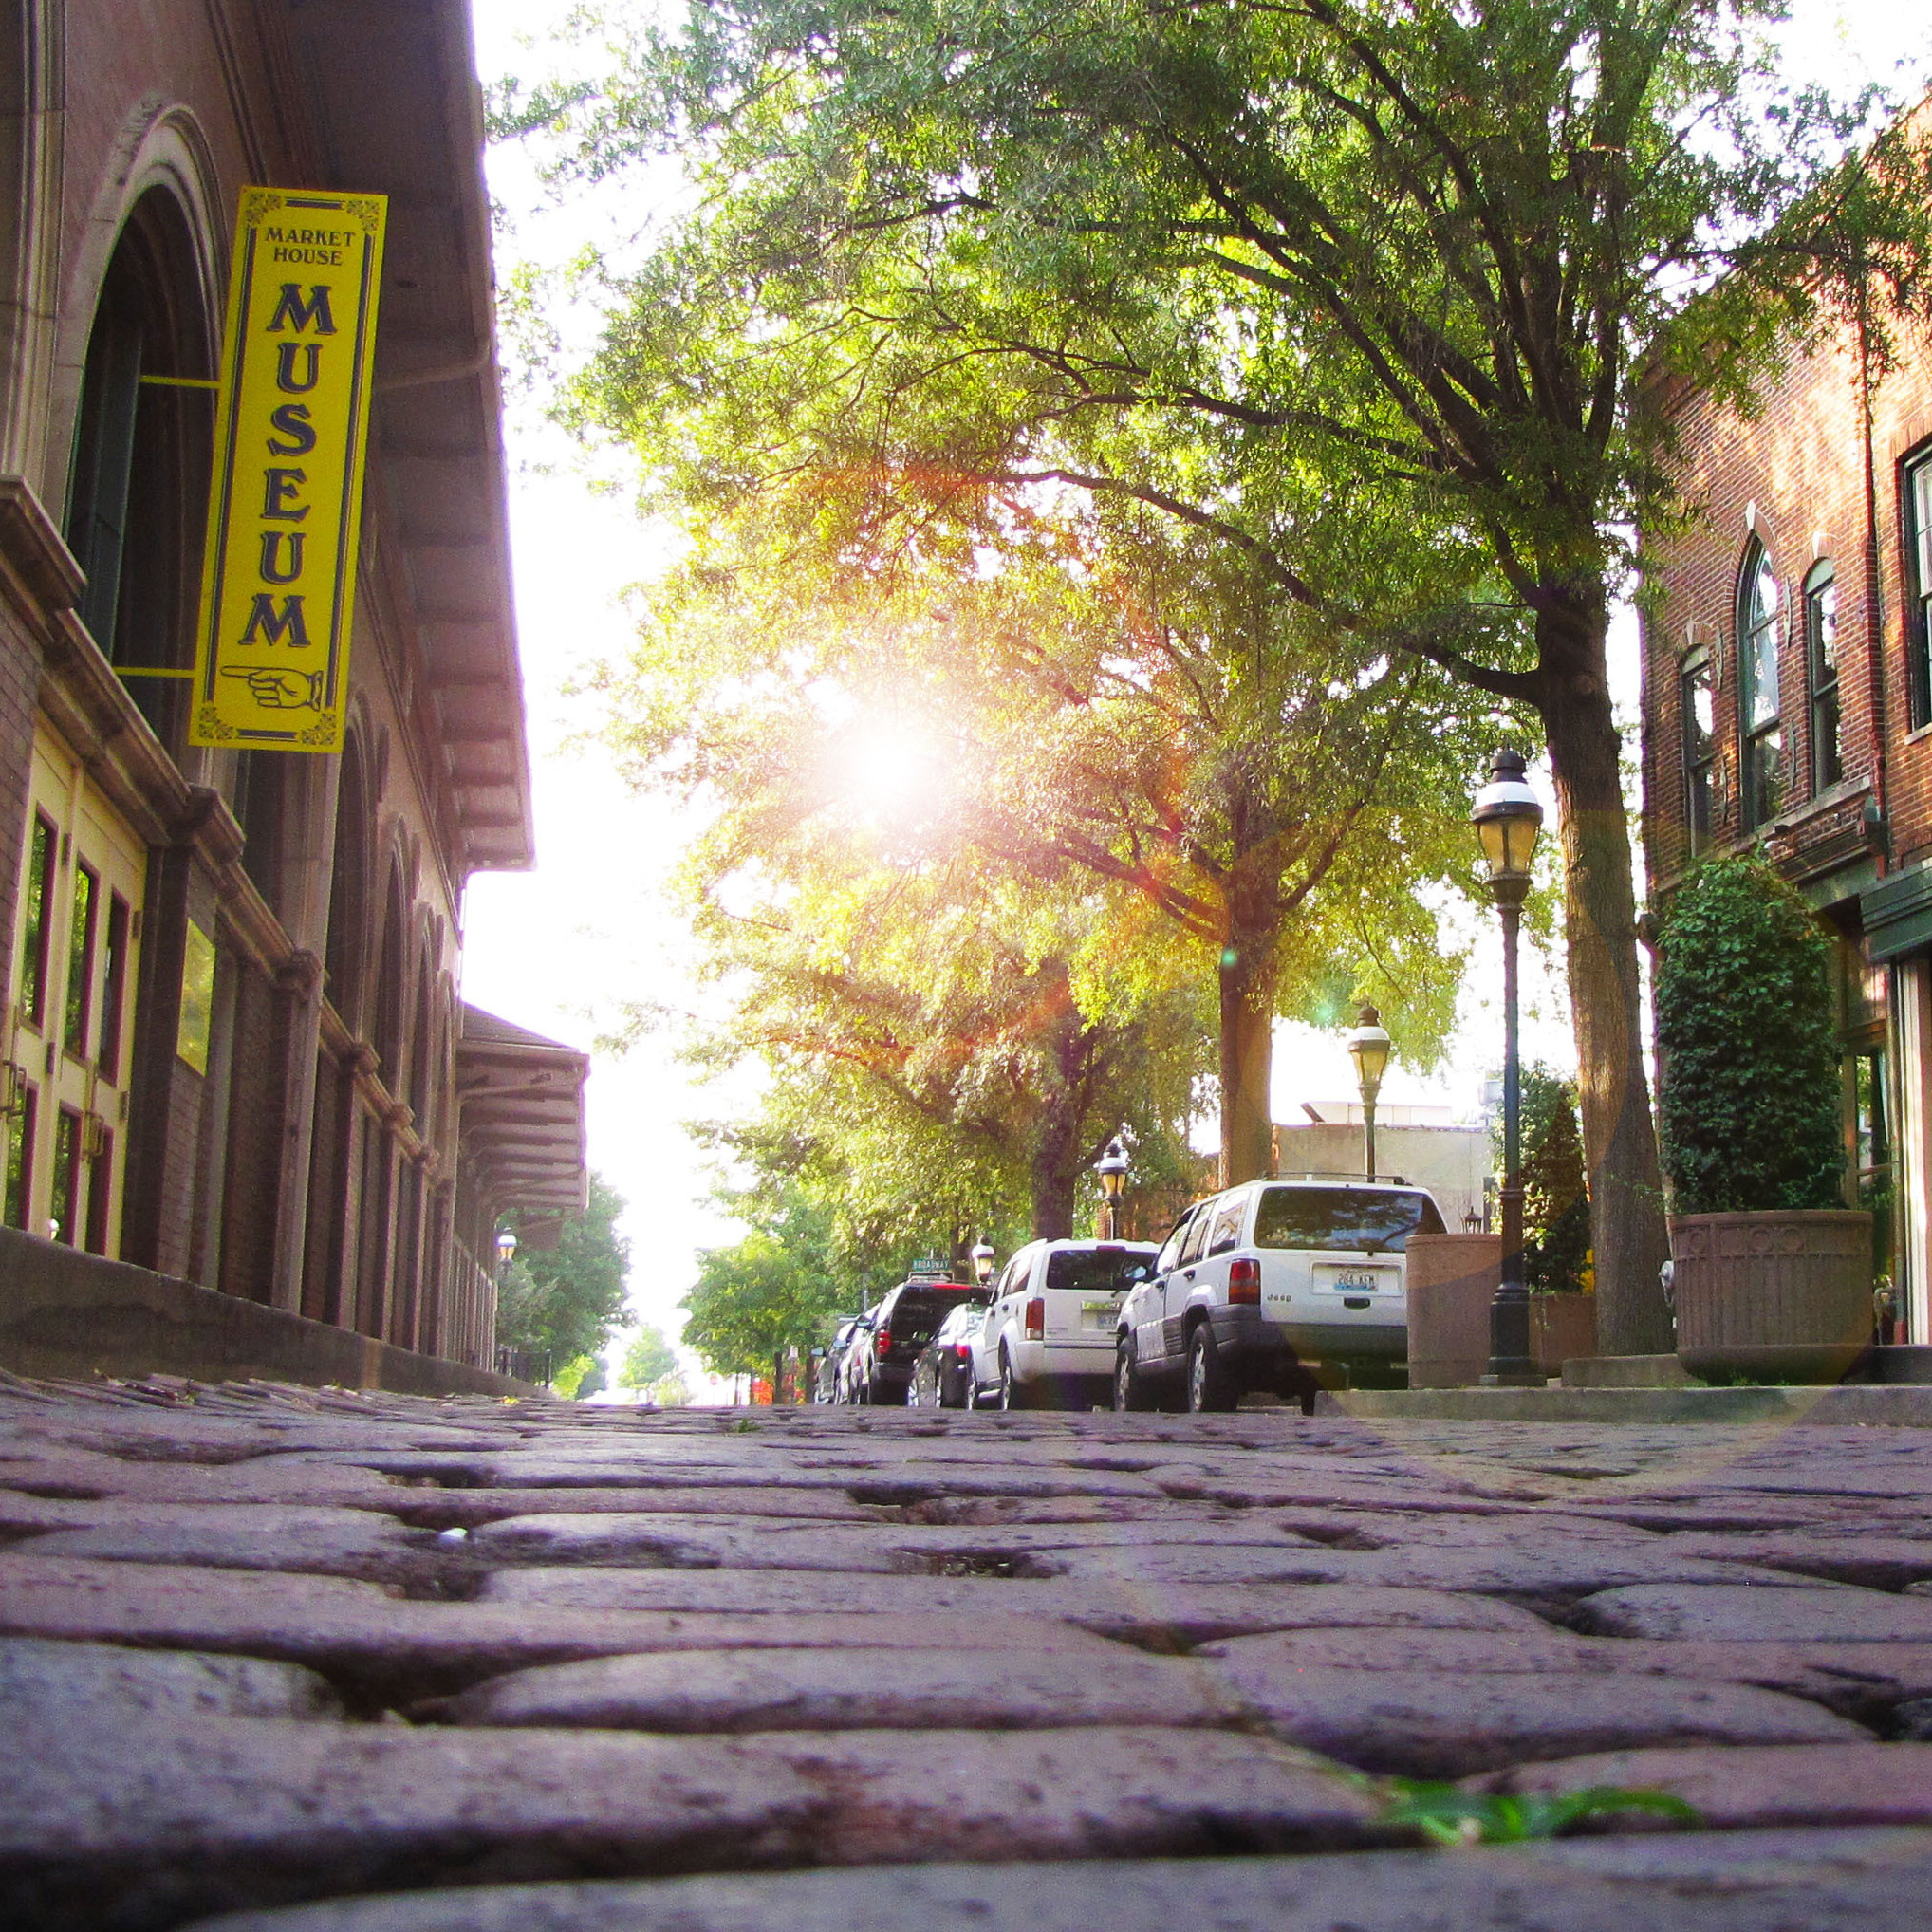 Katie Graves says Market House Square in Paducah, Ky., with its cobblestone streets and buy-local attitude, epitomizes the small city's rich heritage as the confluence of old and new.